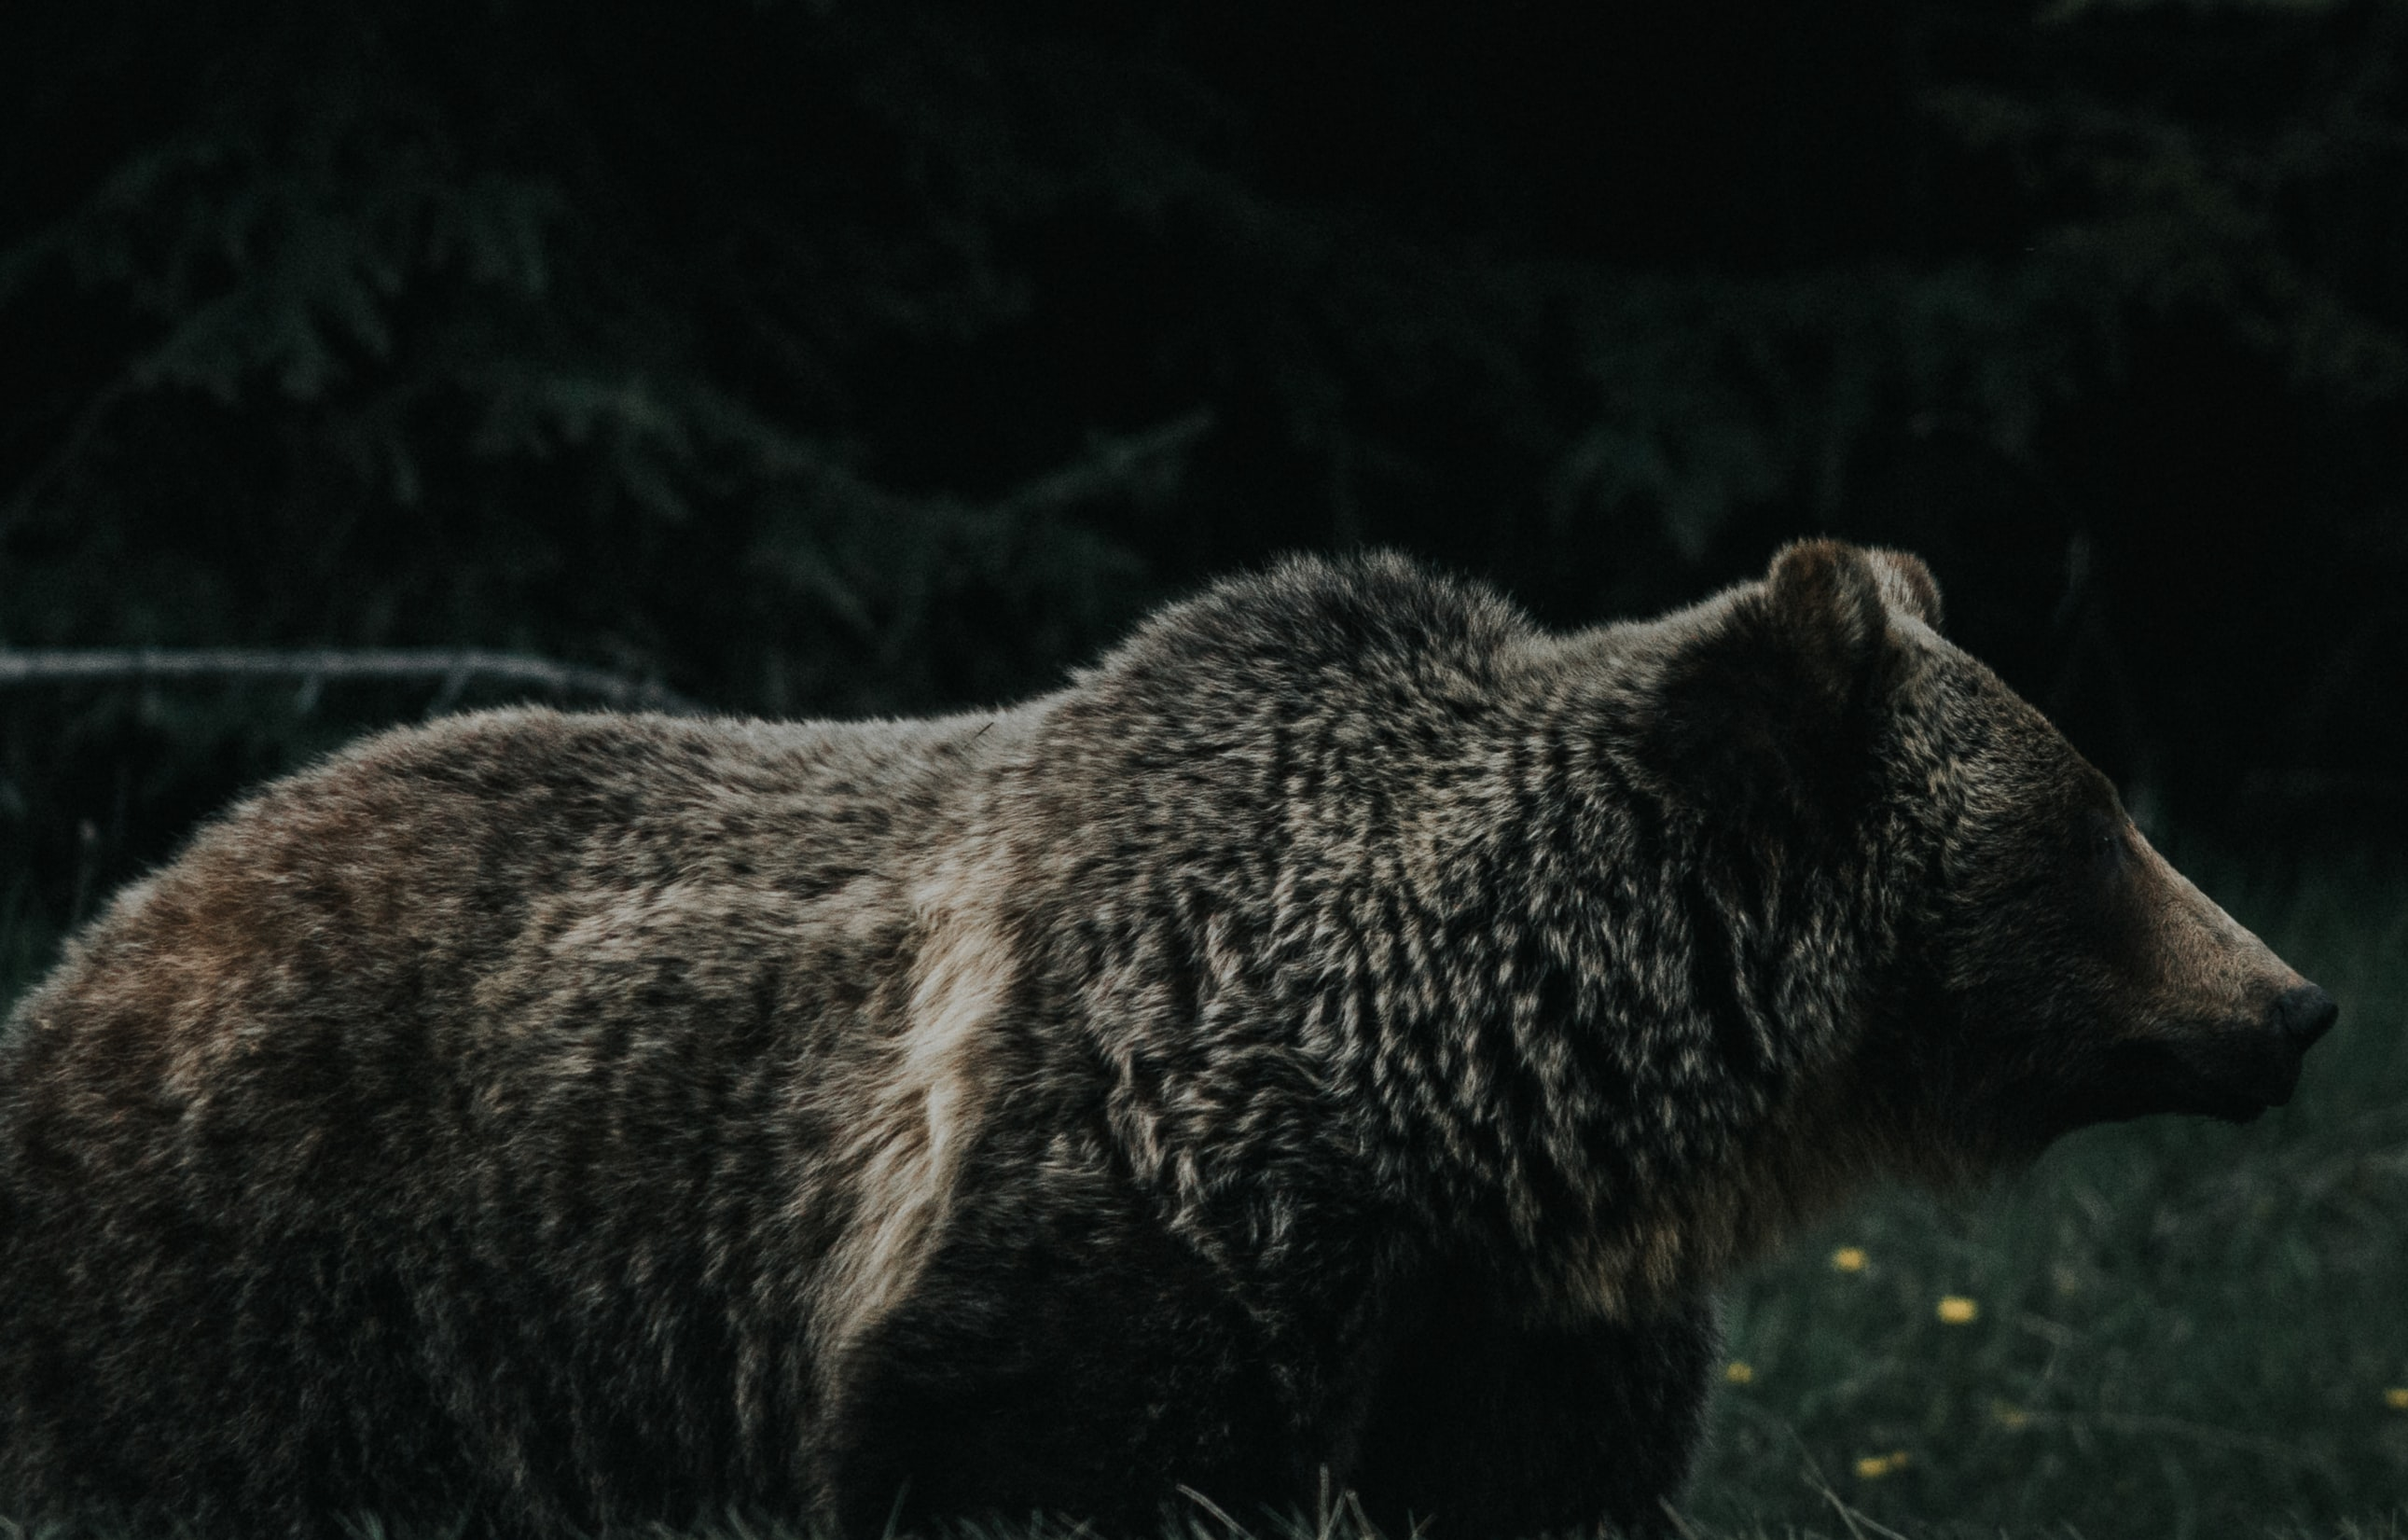 Montana Hunter Reports Killing Grizzly Bear in Self-Defense